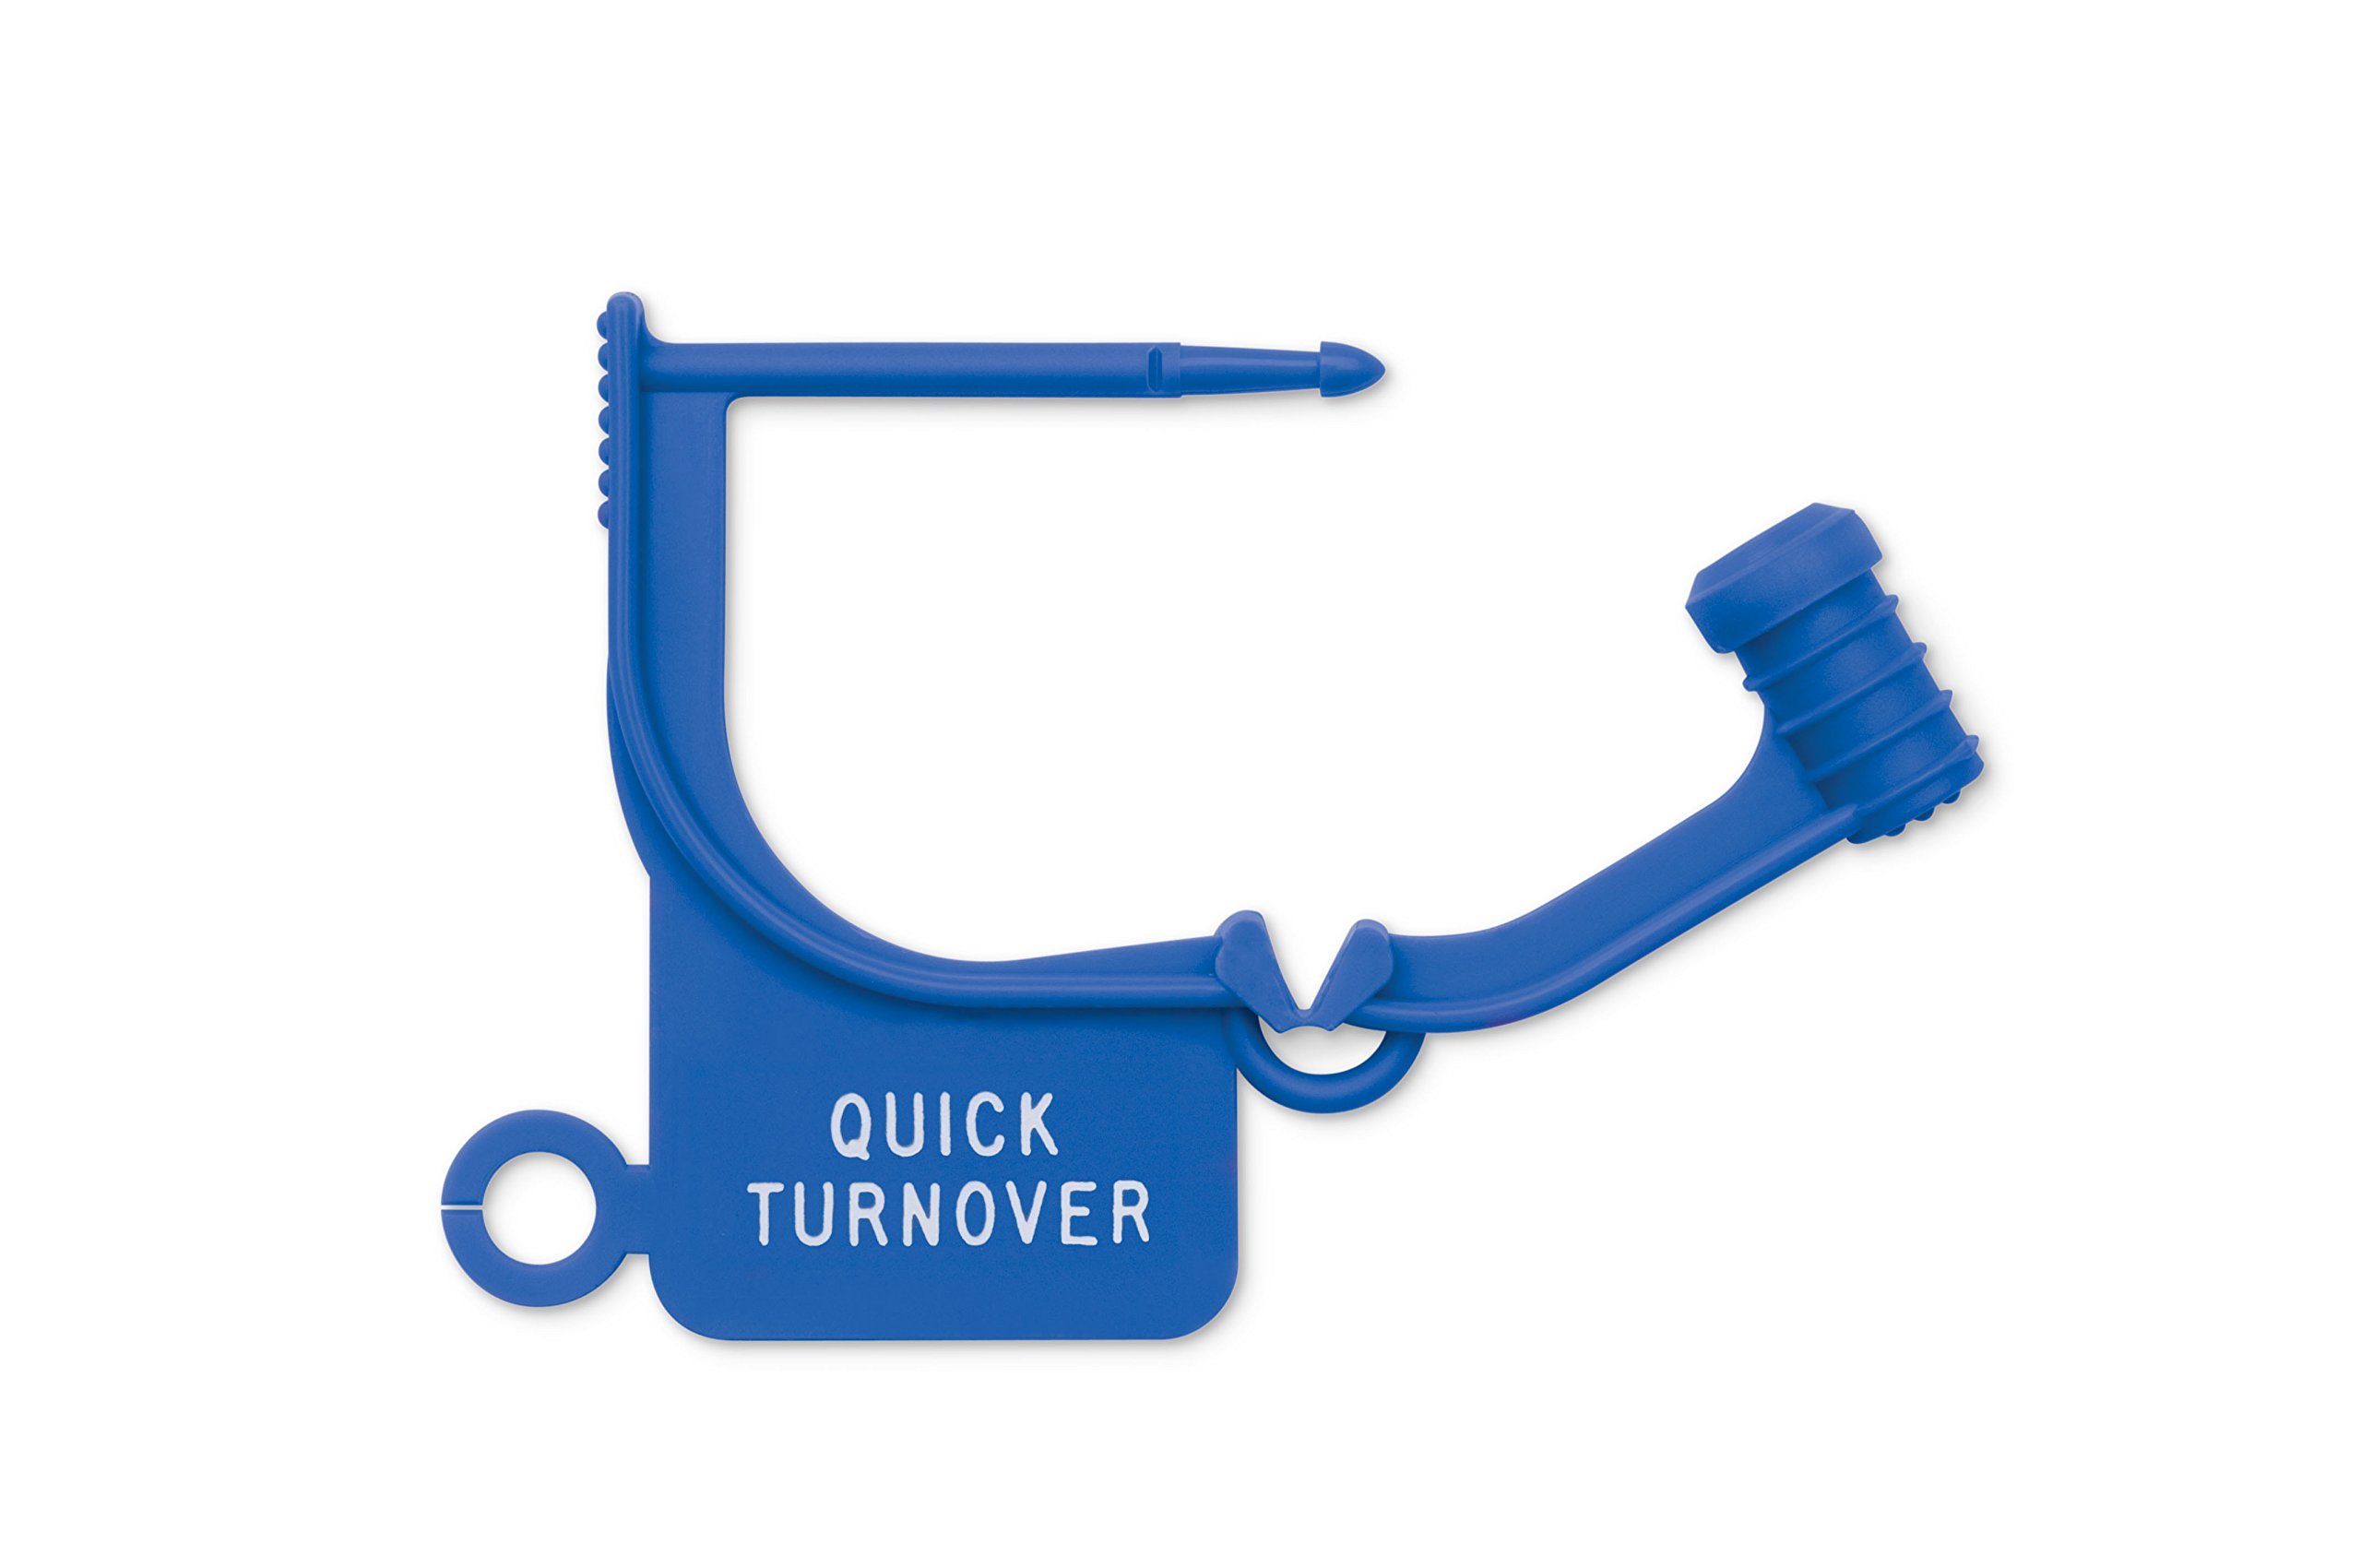 Key Surgical LT-210 Locking Tag, ''QUICK TURNOVER'', Blue (Pack of 100)